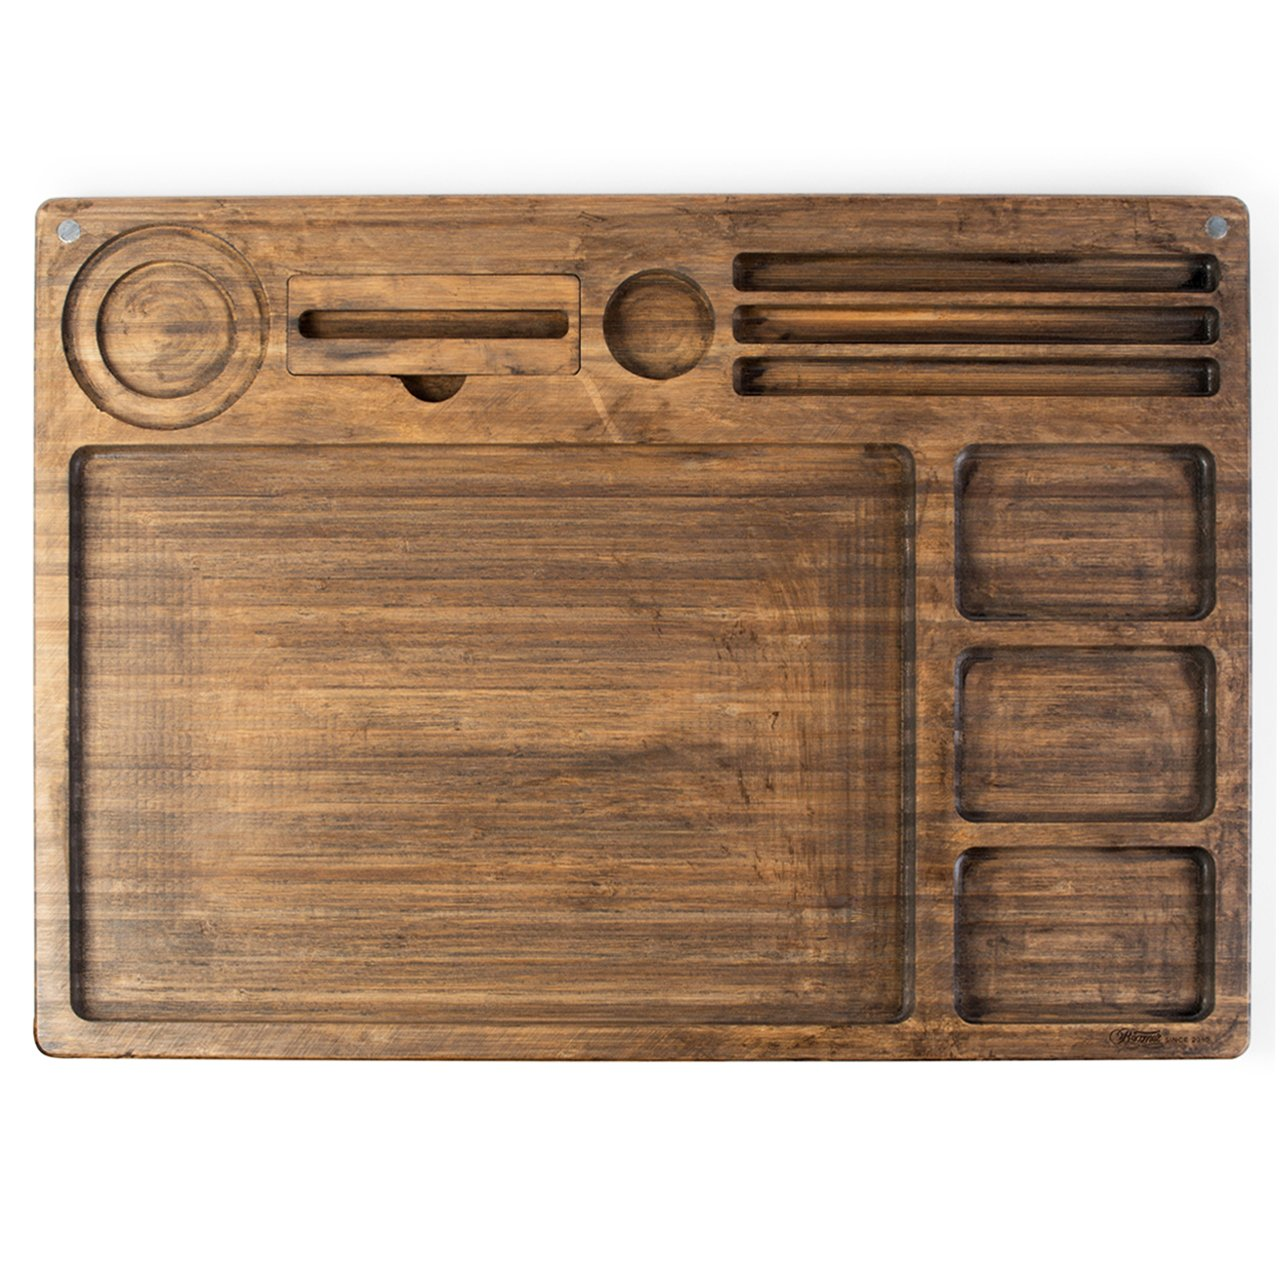 Beamer Goliath All In One Natural Bamboo Rolling Tray - Original Finish - 21 X 15 inch by Beamer